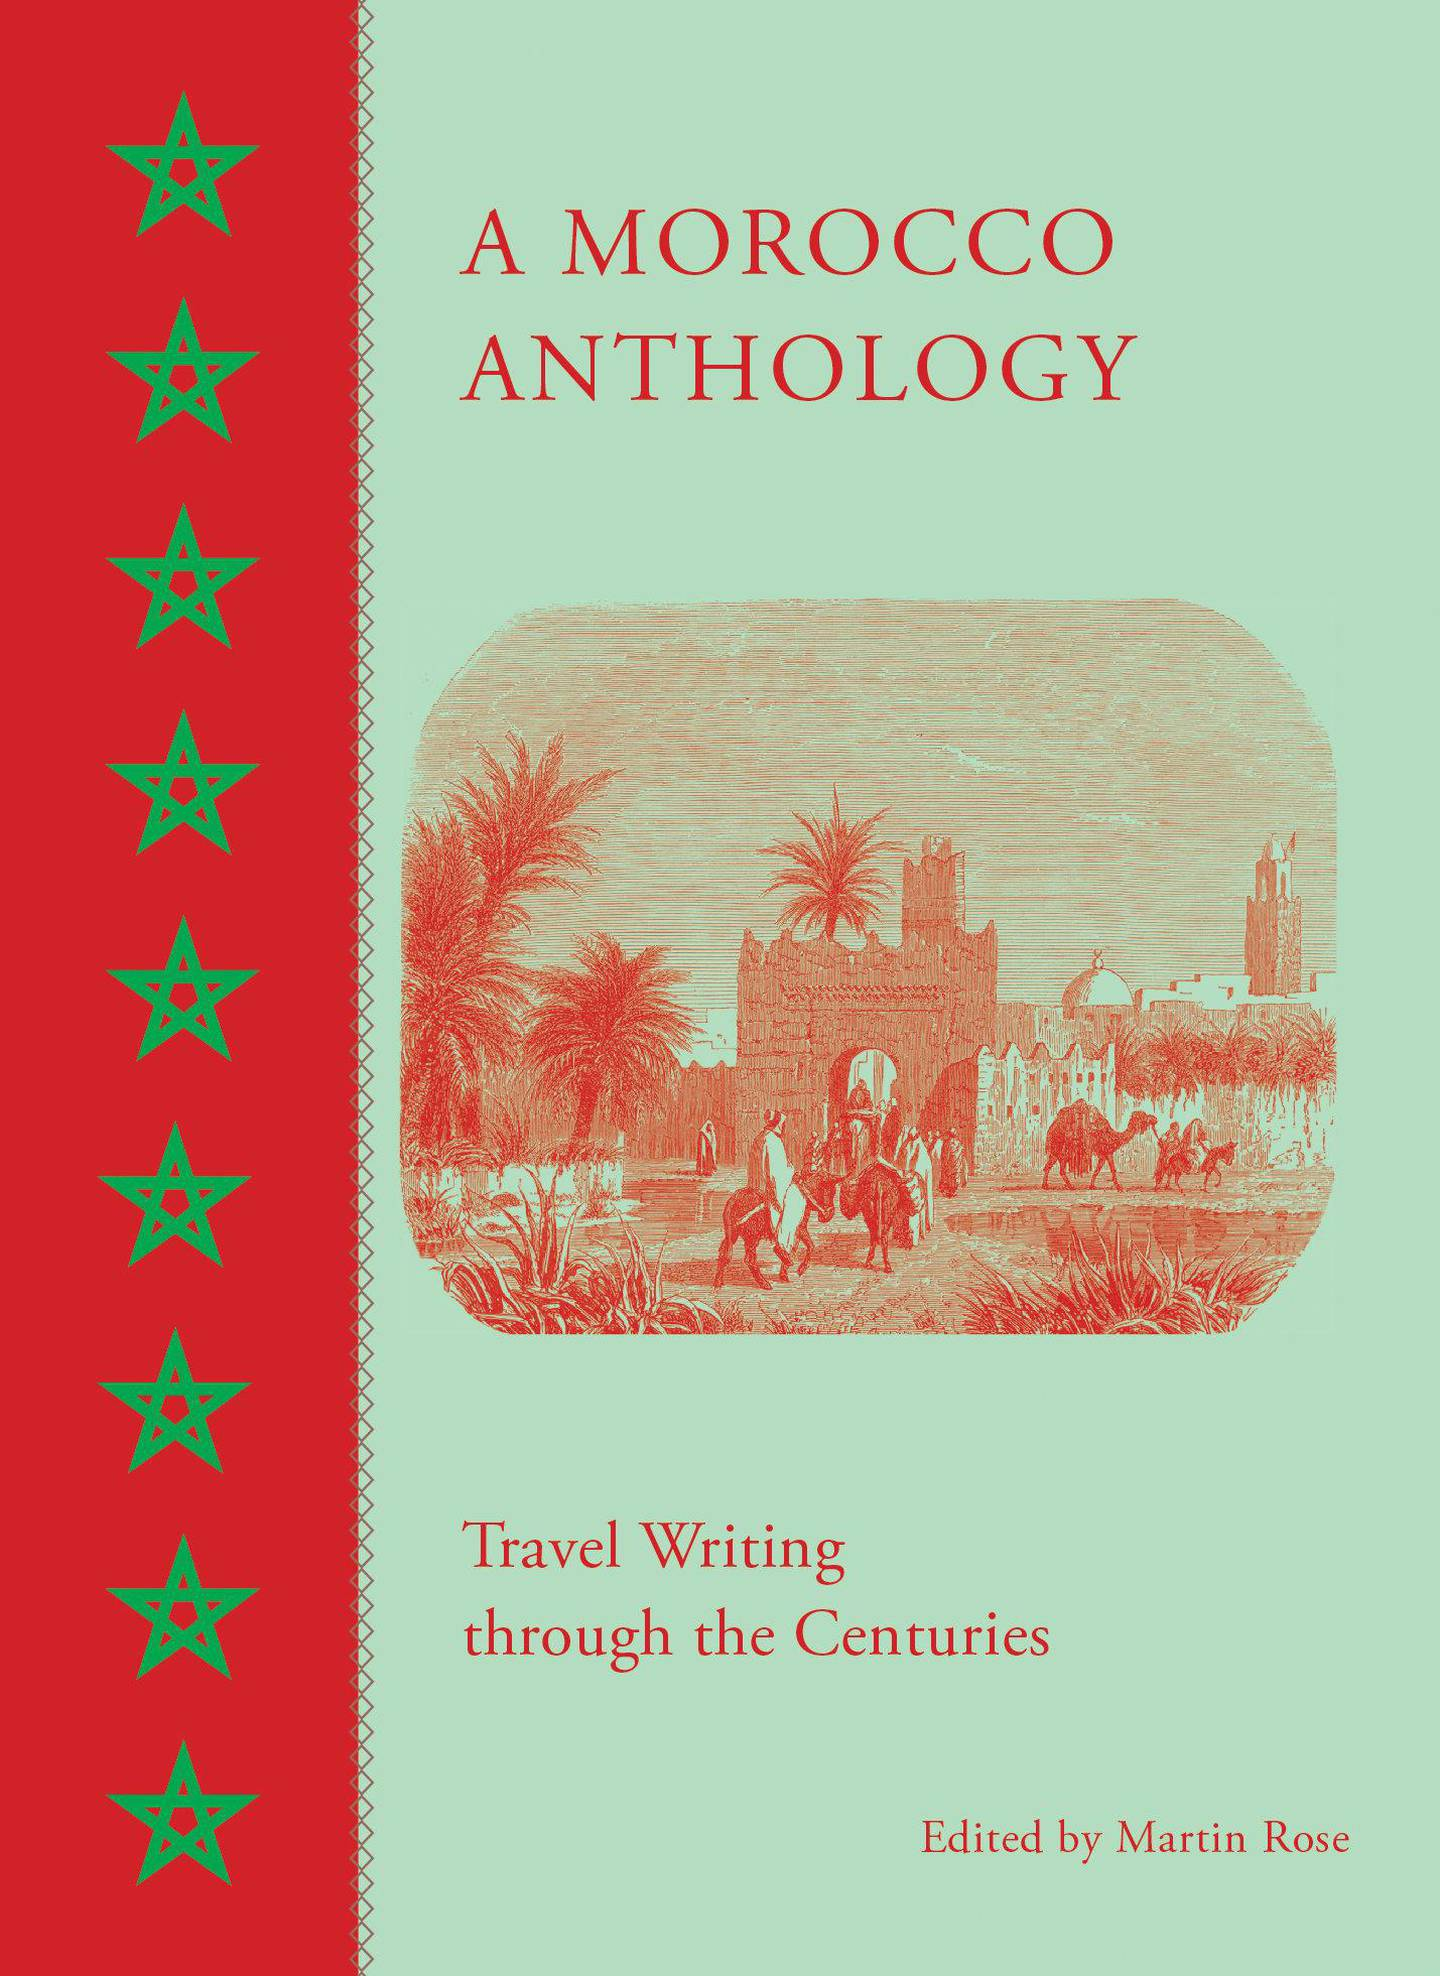 A Morocco Anthology: Travel Writing through the Centuries, Edited by Martin Rose. Courtesy The American University in Cairo Press